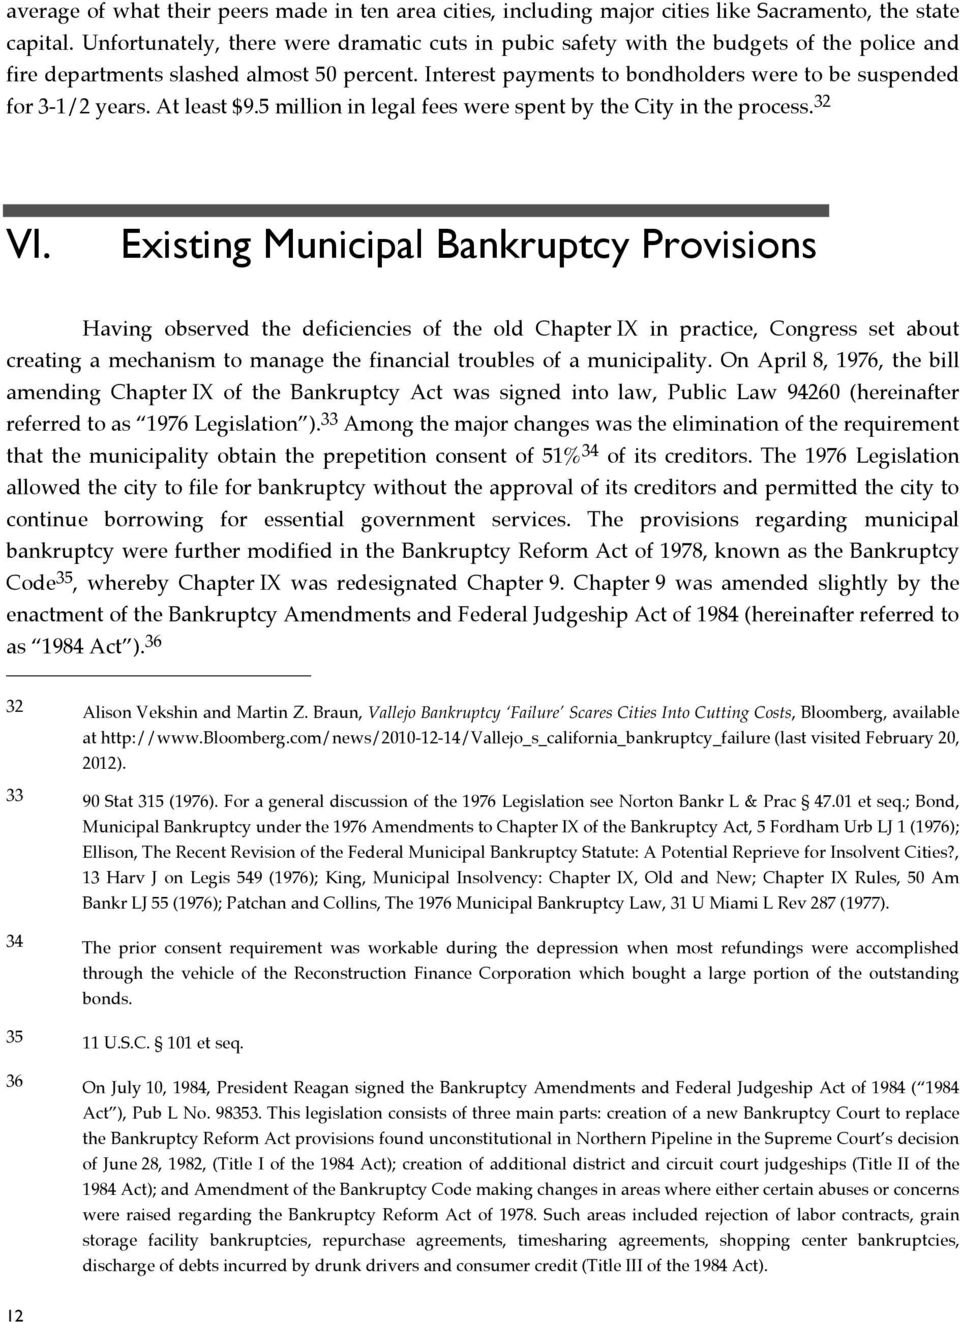 Interest payments to bondholders were to be suspended for 3-1/2 years. At least $9.5 million in legal fees were spent by the City in the process. 32 VI.